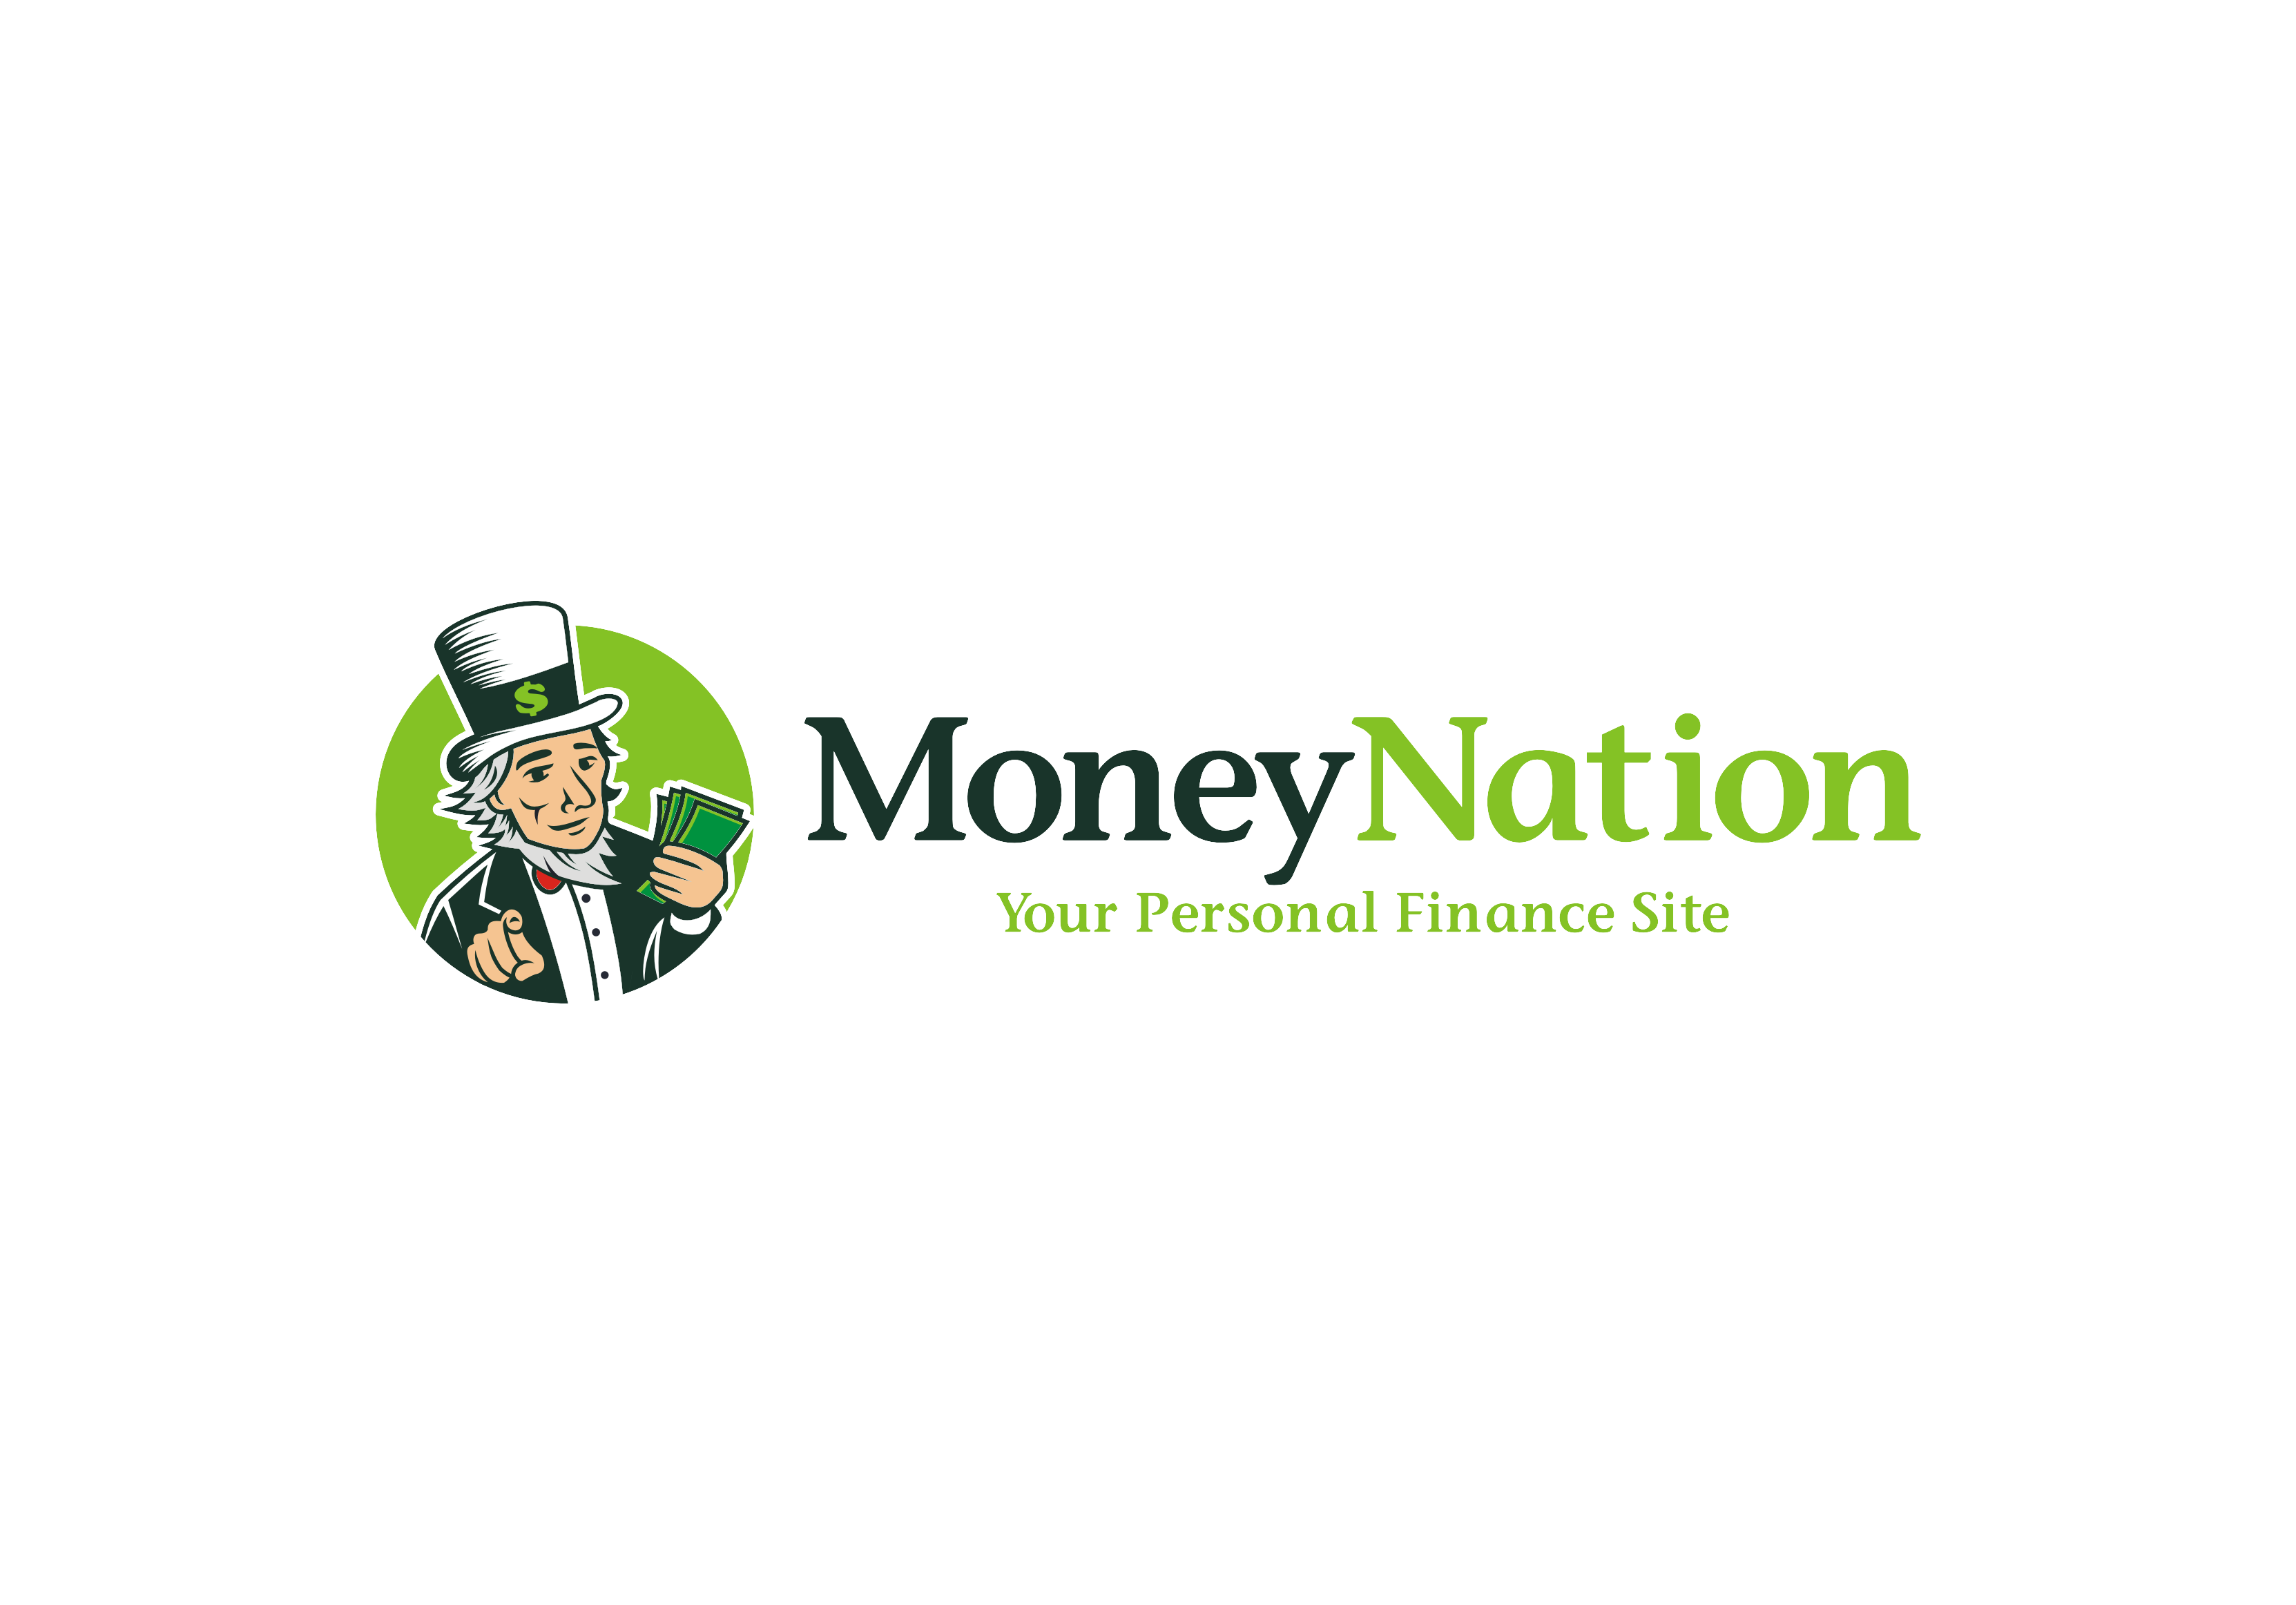 Logo for MoneyNation, new Personal Finance site